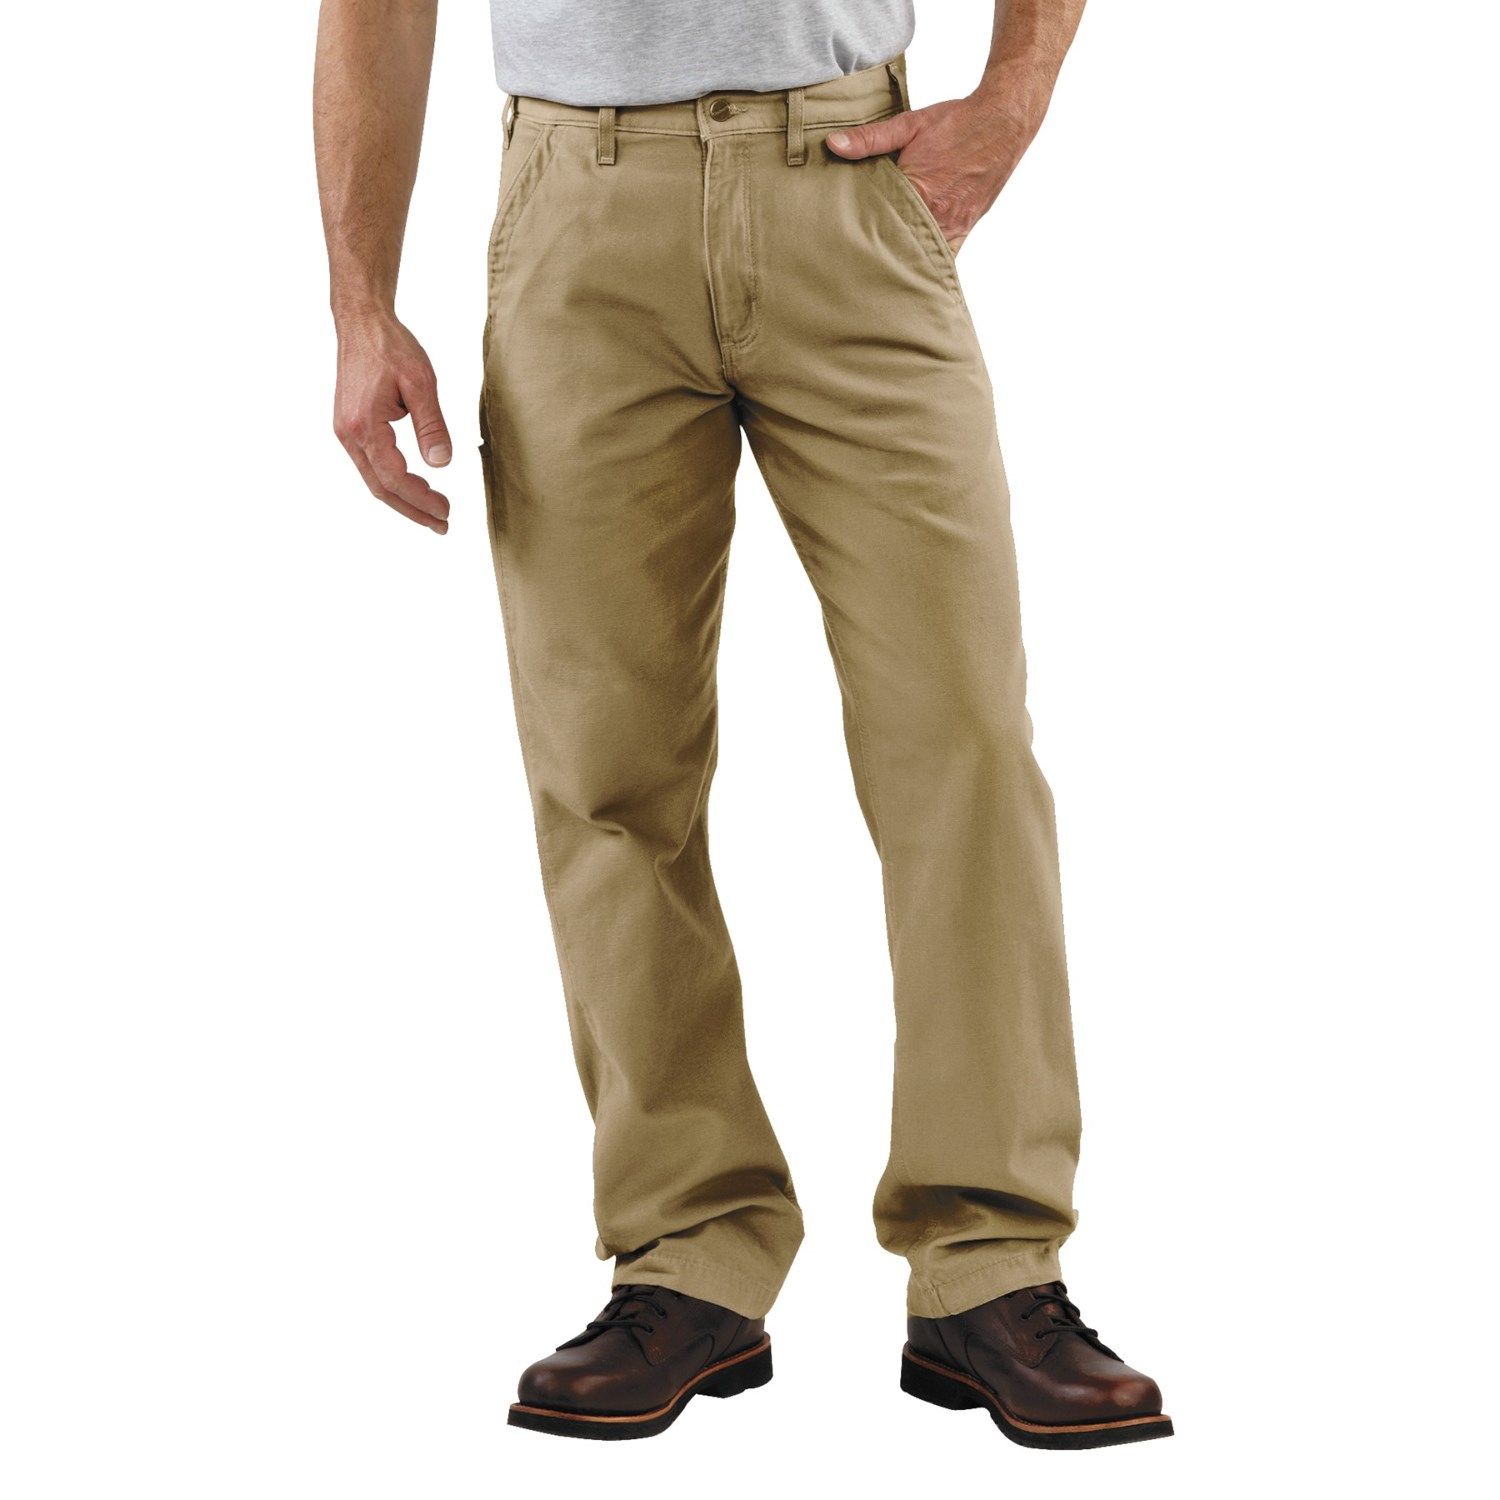 "Khaki pants and a button-down shirt are a smart choice for casual Friday at the office. For a day spent working around the house, stay comfortable in khakis, a t-shirt, and sneakers. Boots and khakis come together for a ""look good anywhere"" combination."